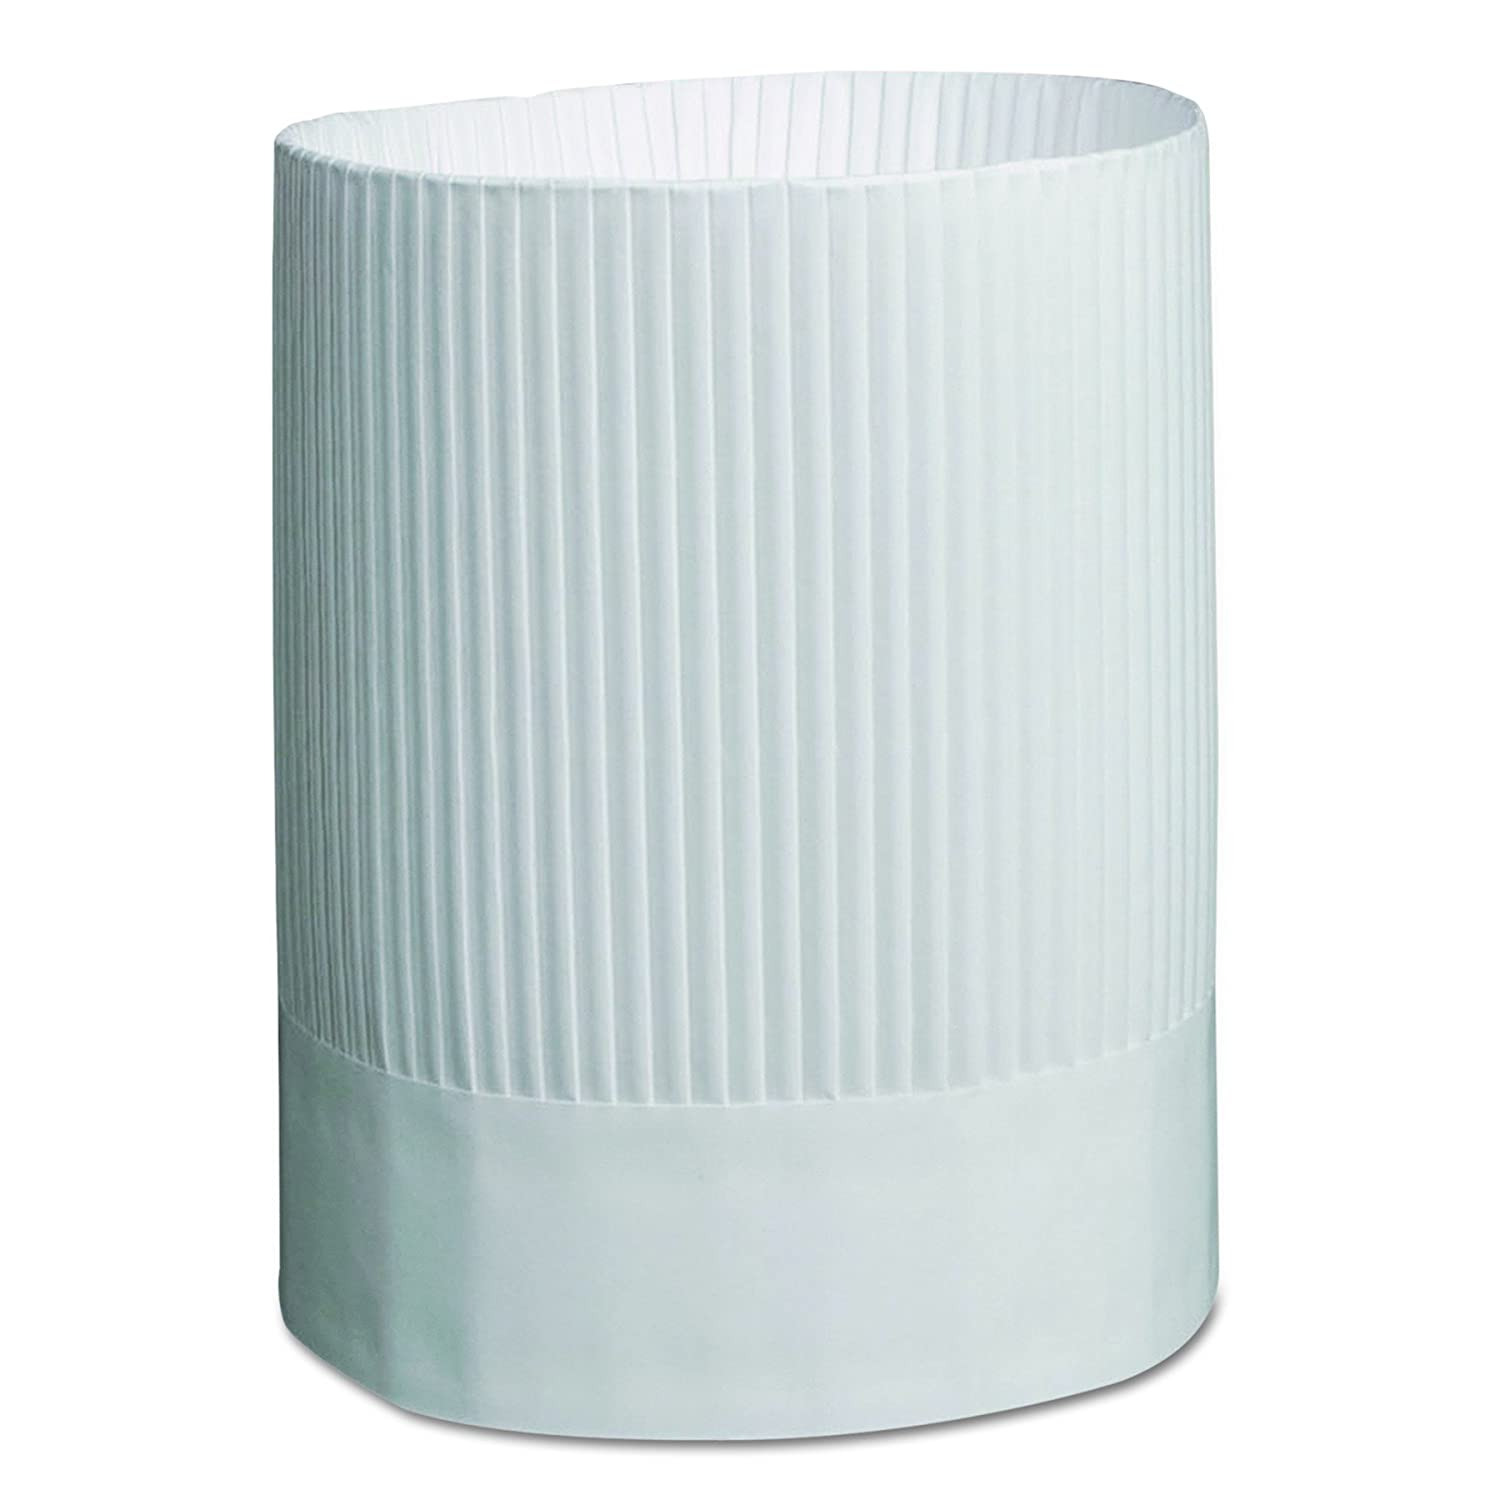 Royal SCH9 Stirling Fluted Chef's Hats, Paper, White, Adjustable, 9 in. Tall (Case of 12) Royal Paper Products SCH9-C